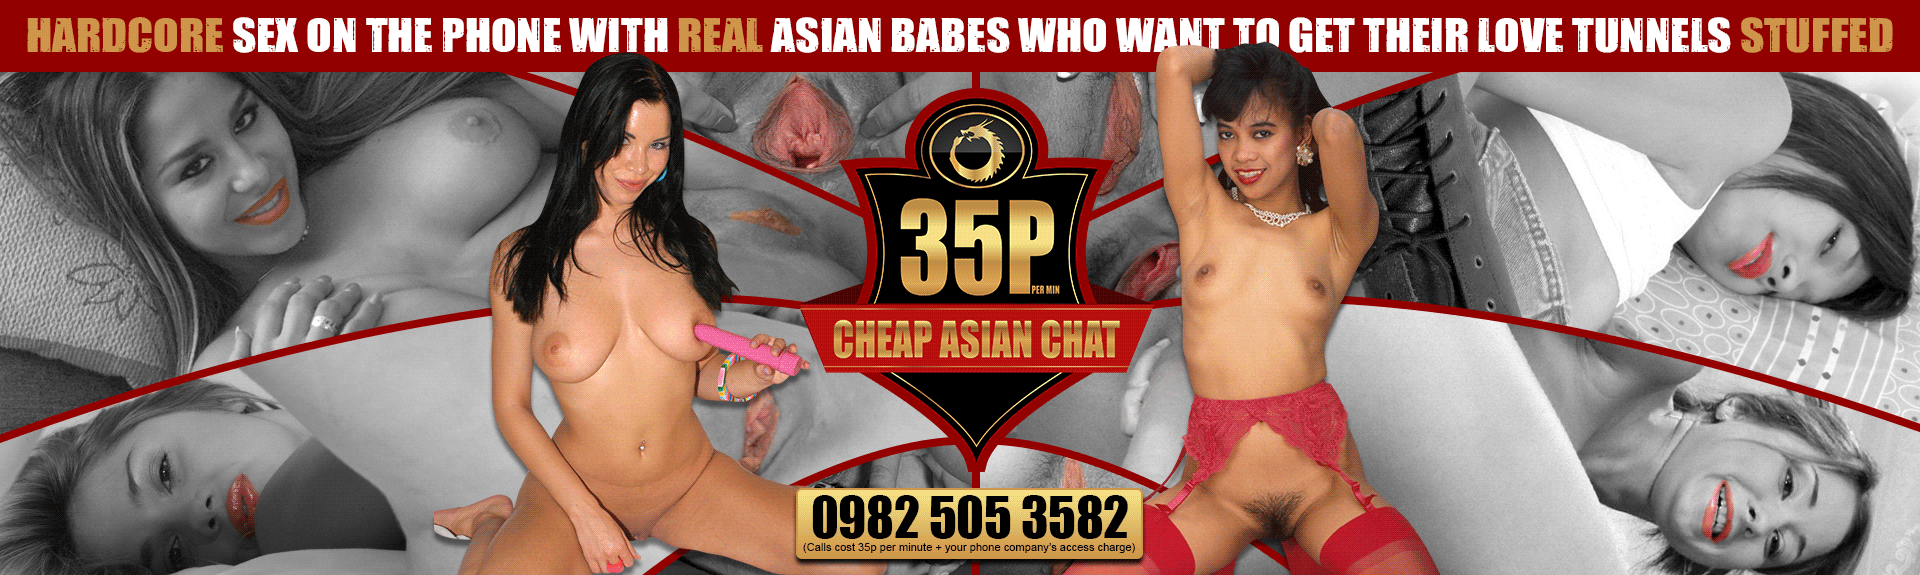 cheap asian escorts live chat